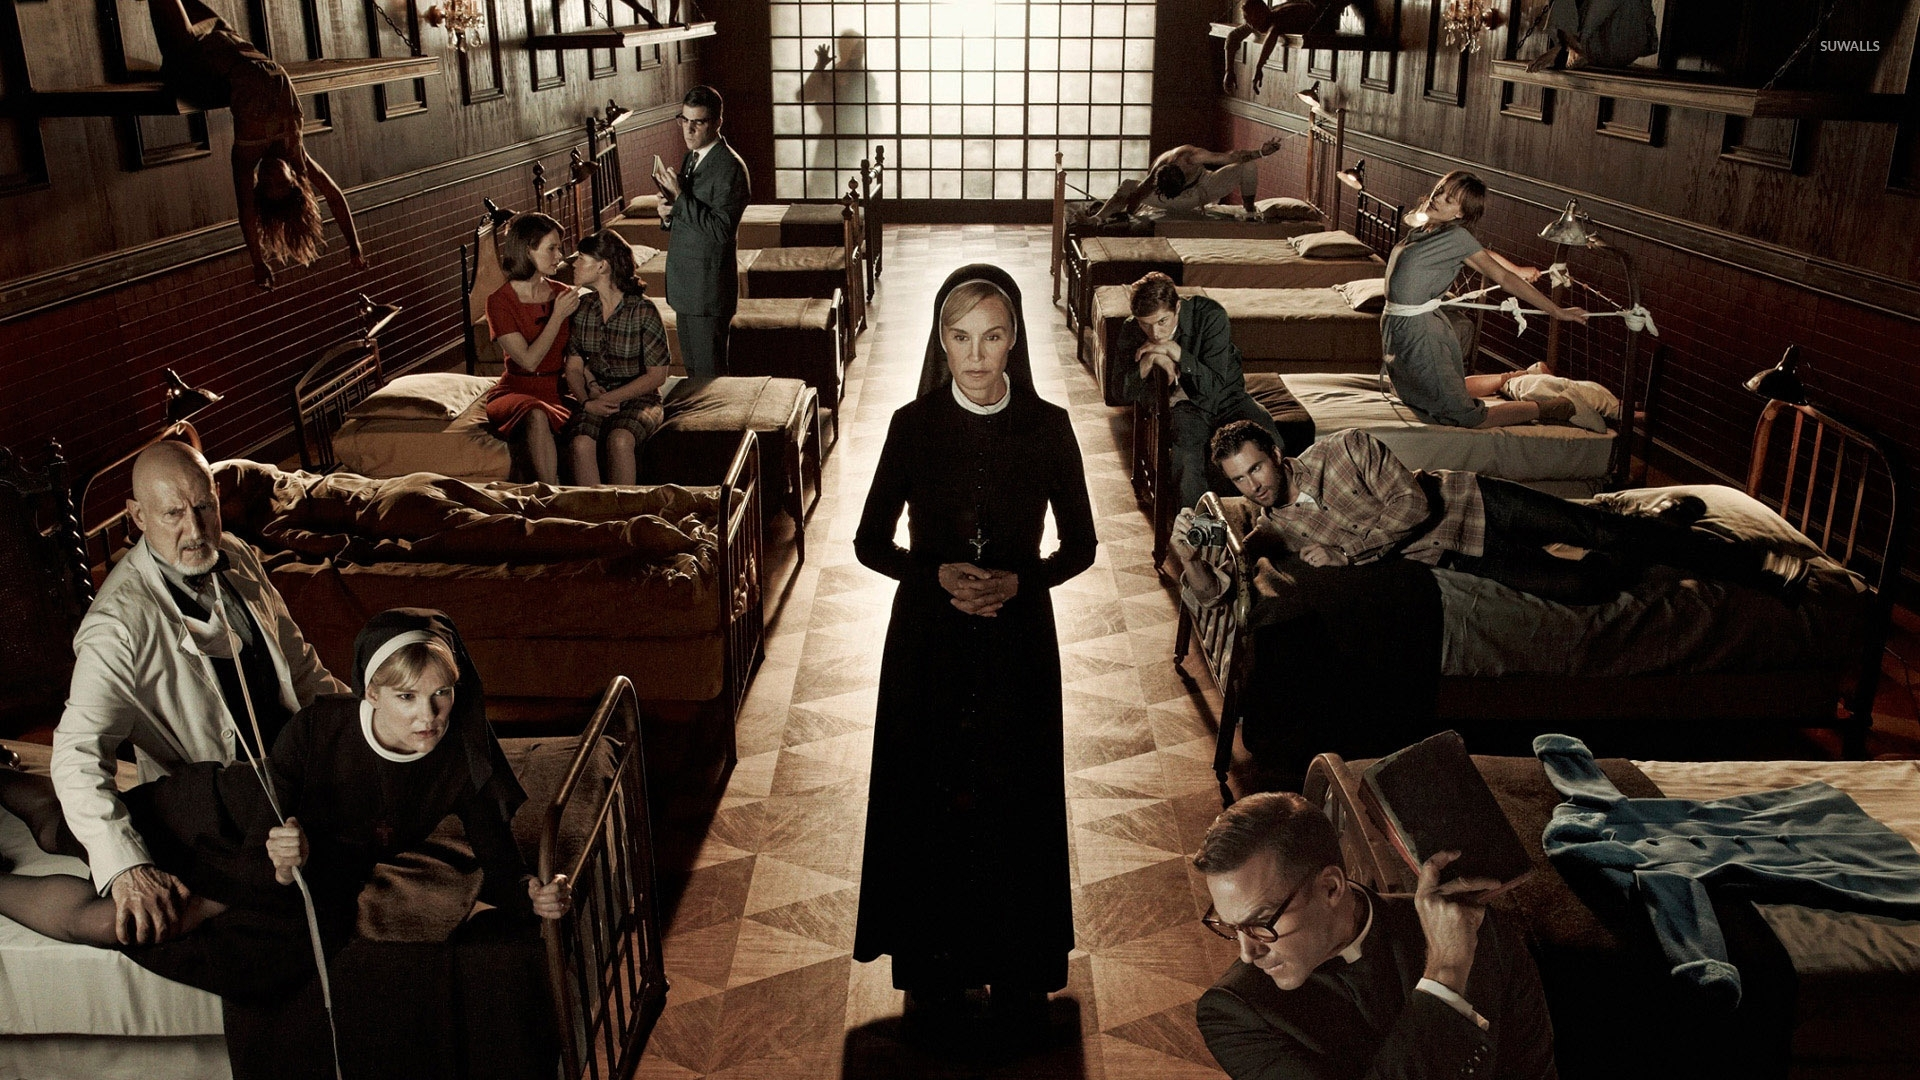 american horror story wallpaper - tv show wallpapers - #27900